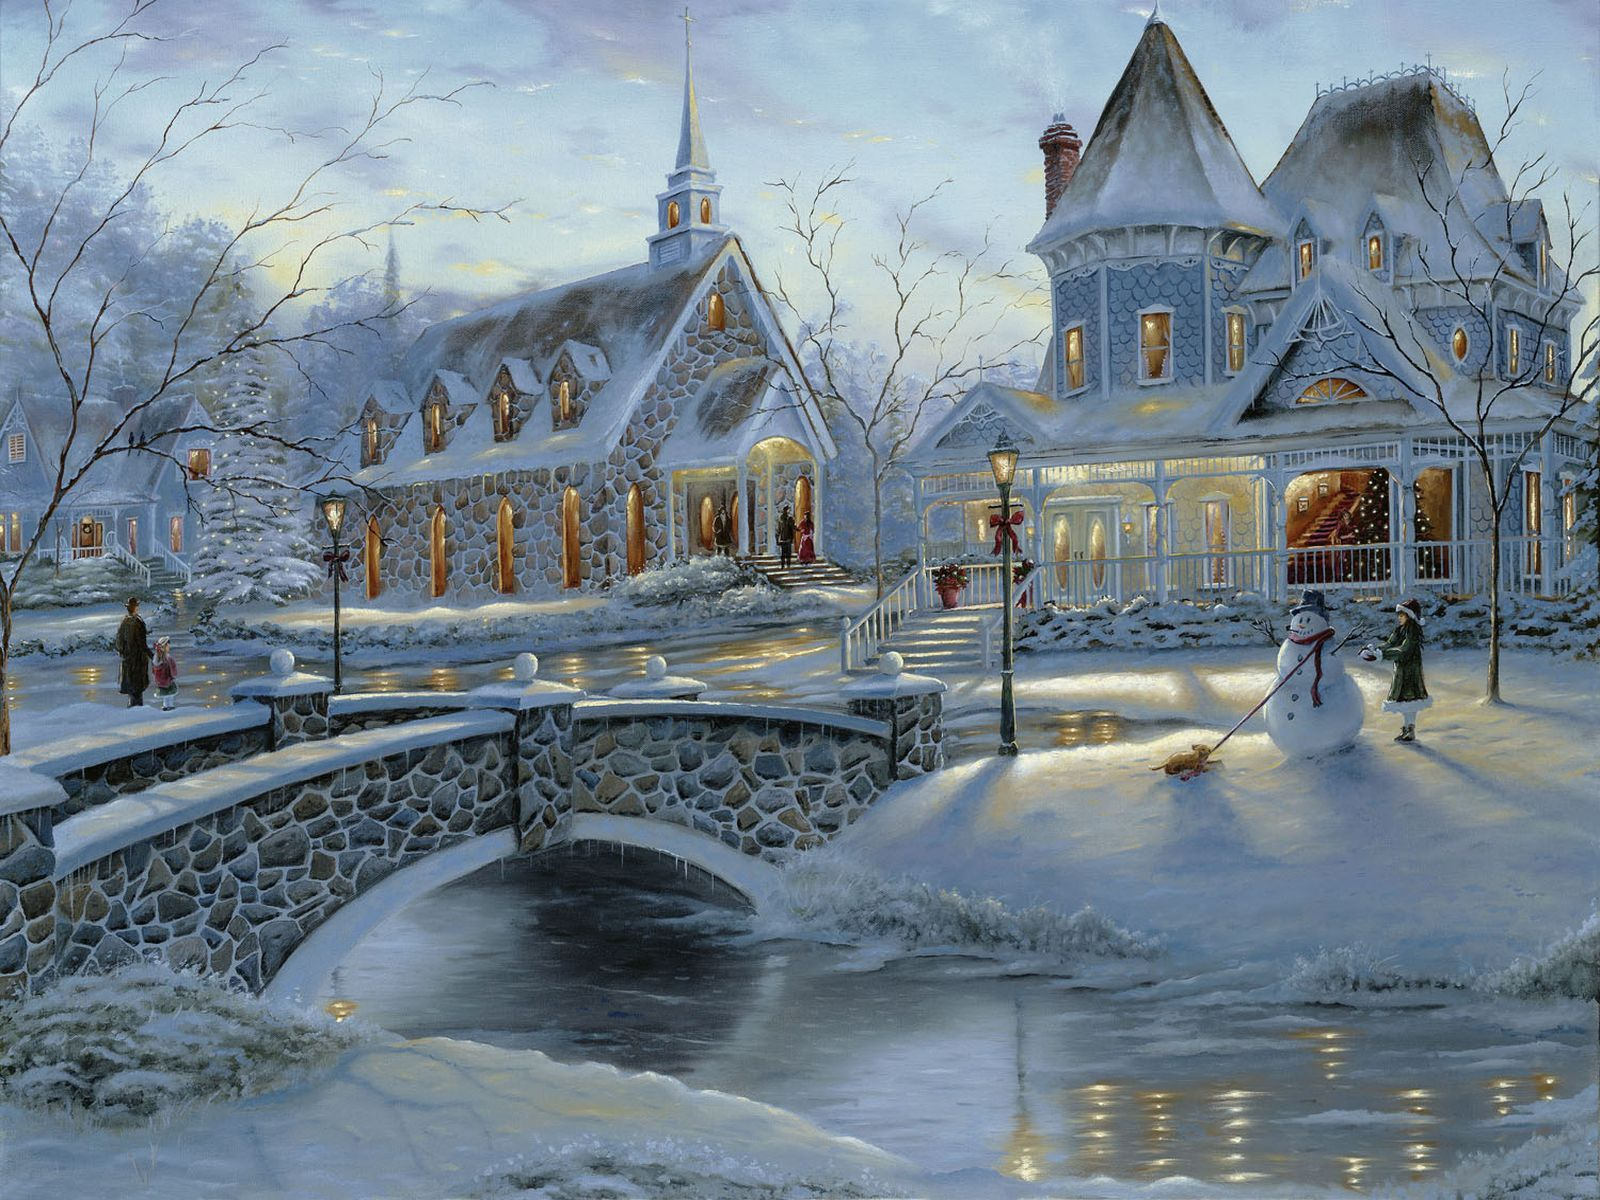 Christmas wallpaper in the beautiful town town Wallpapers 3d for 1600x1200